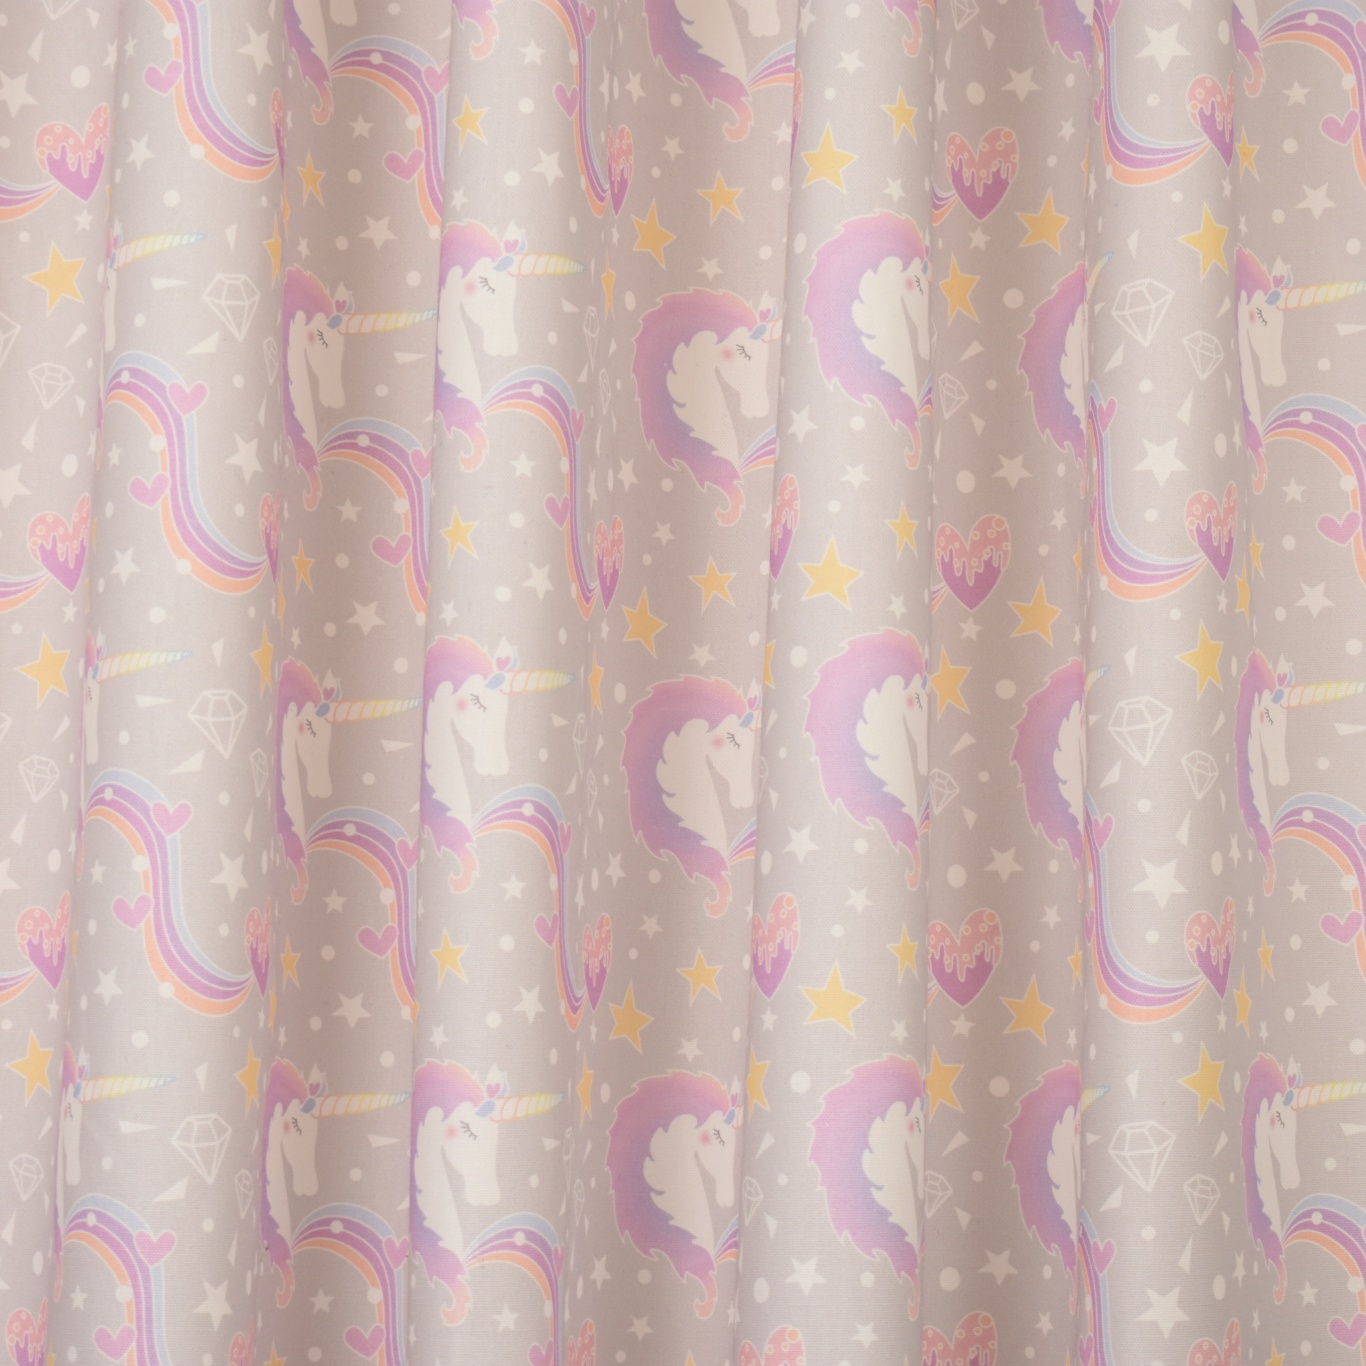 Gordon Smith Unicorn Fabric 1.8m Remnant